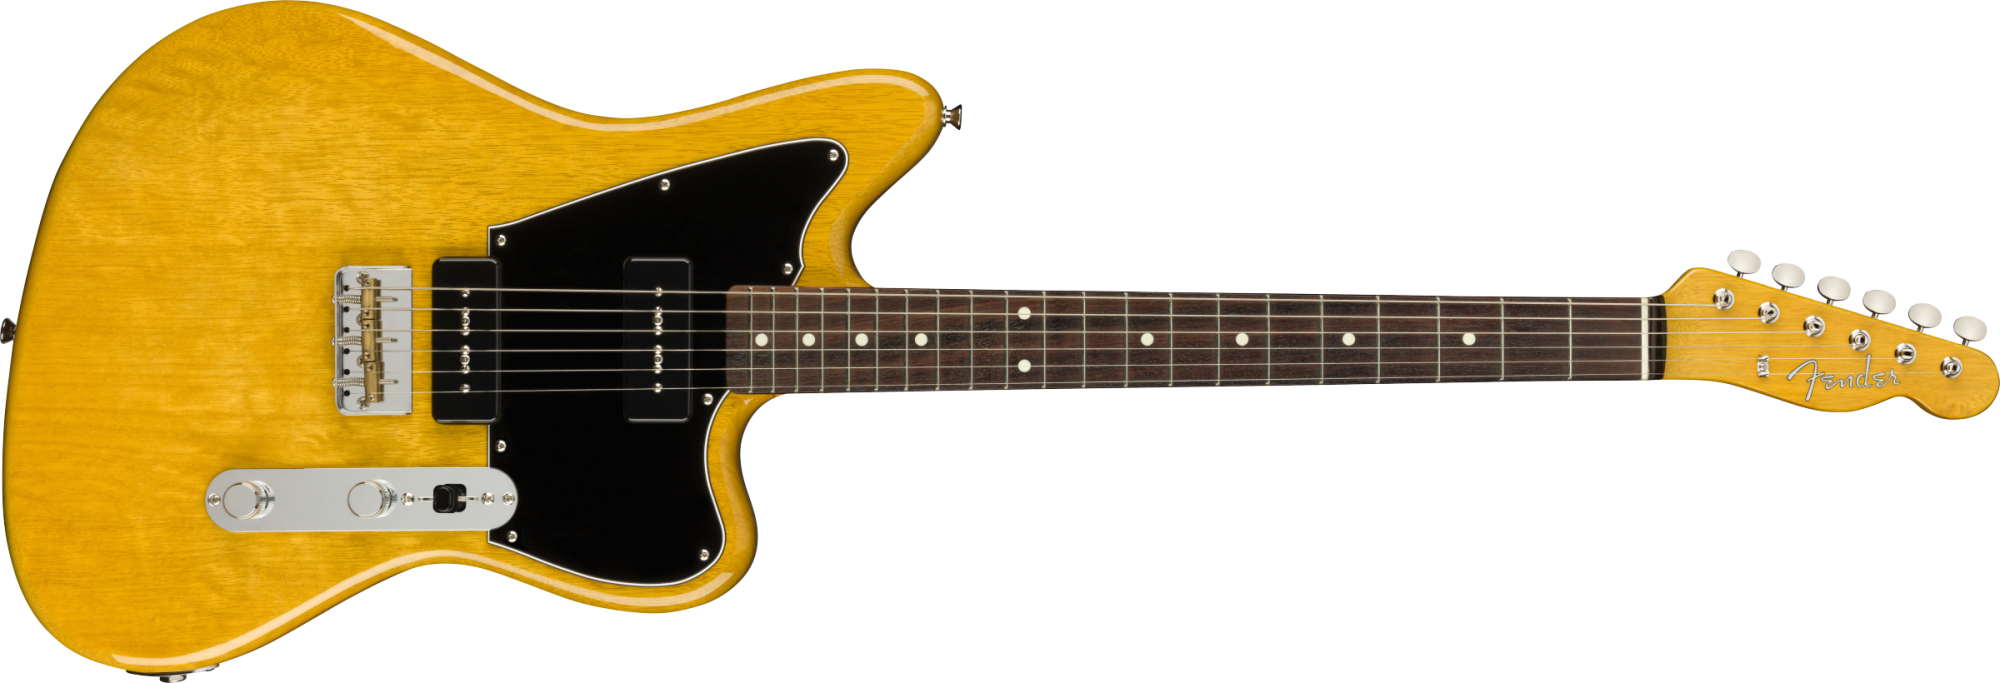 Fender Limited Edition Offset Korina Tele - Made In Japan - Aged Natural